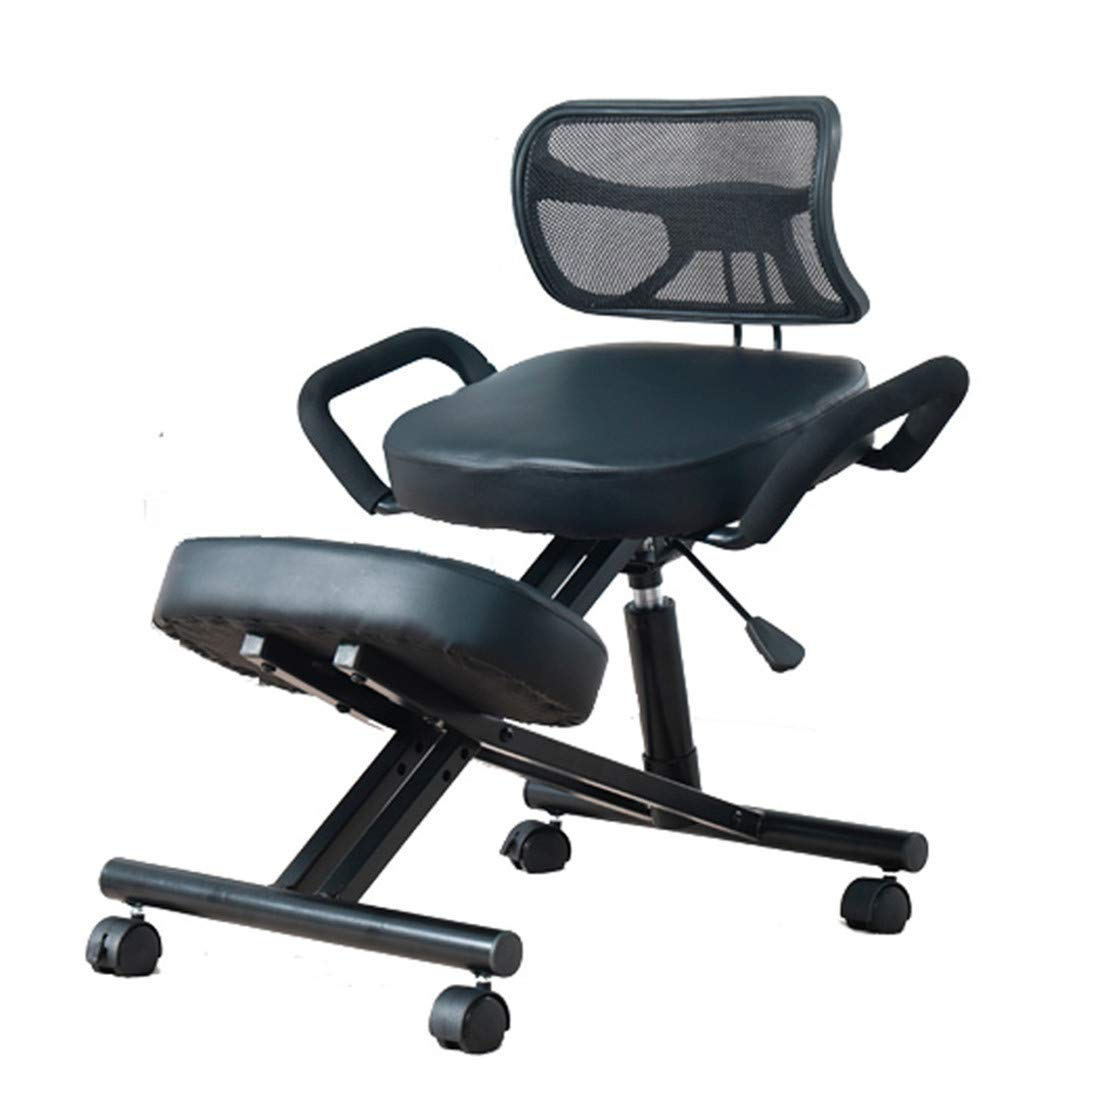 Kneeling Chairs Posture Helps Prevent Coccyx Pain Ergonomic with Handle Cushions Designed Posture with an Angled Office Seat Helps Prevent Coccyx Pain